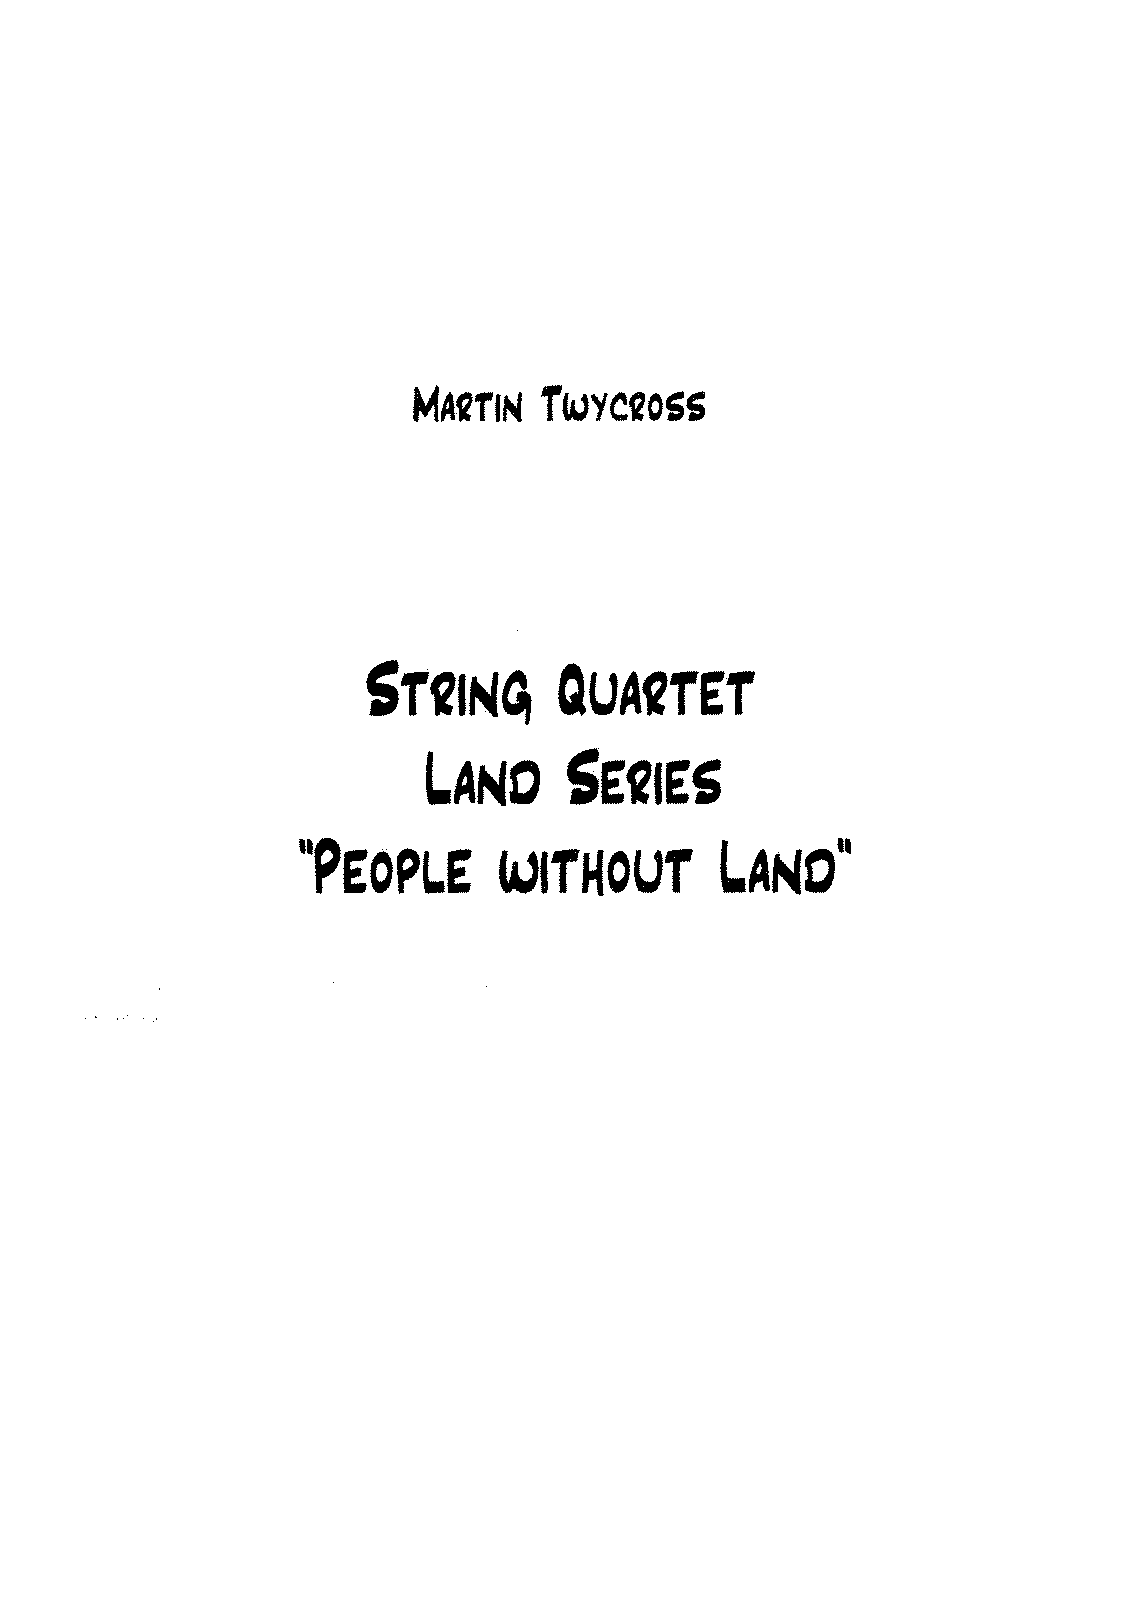 PMLP204441-String Quartet Land series People without land (Martin Twycross).pdf